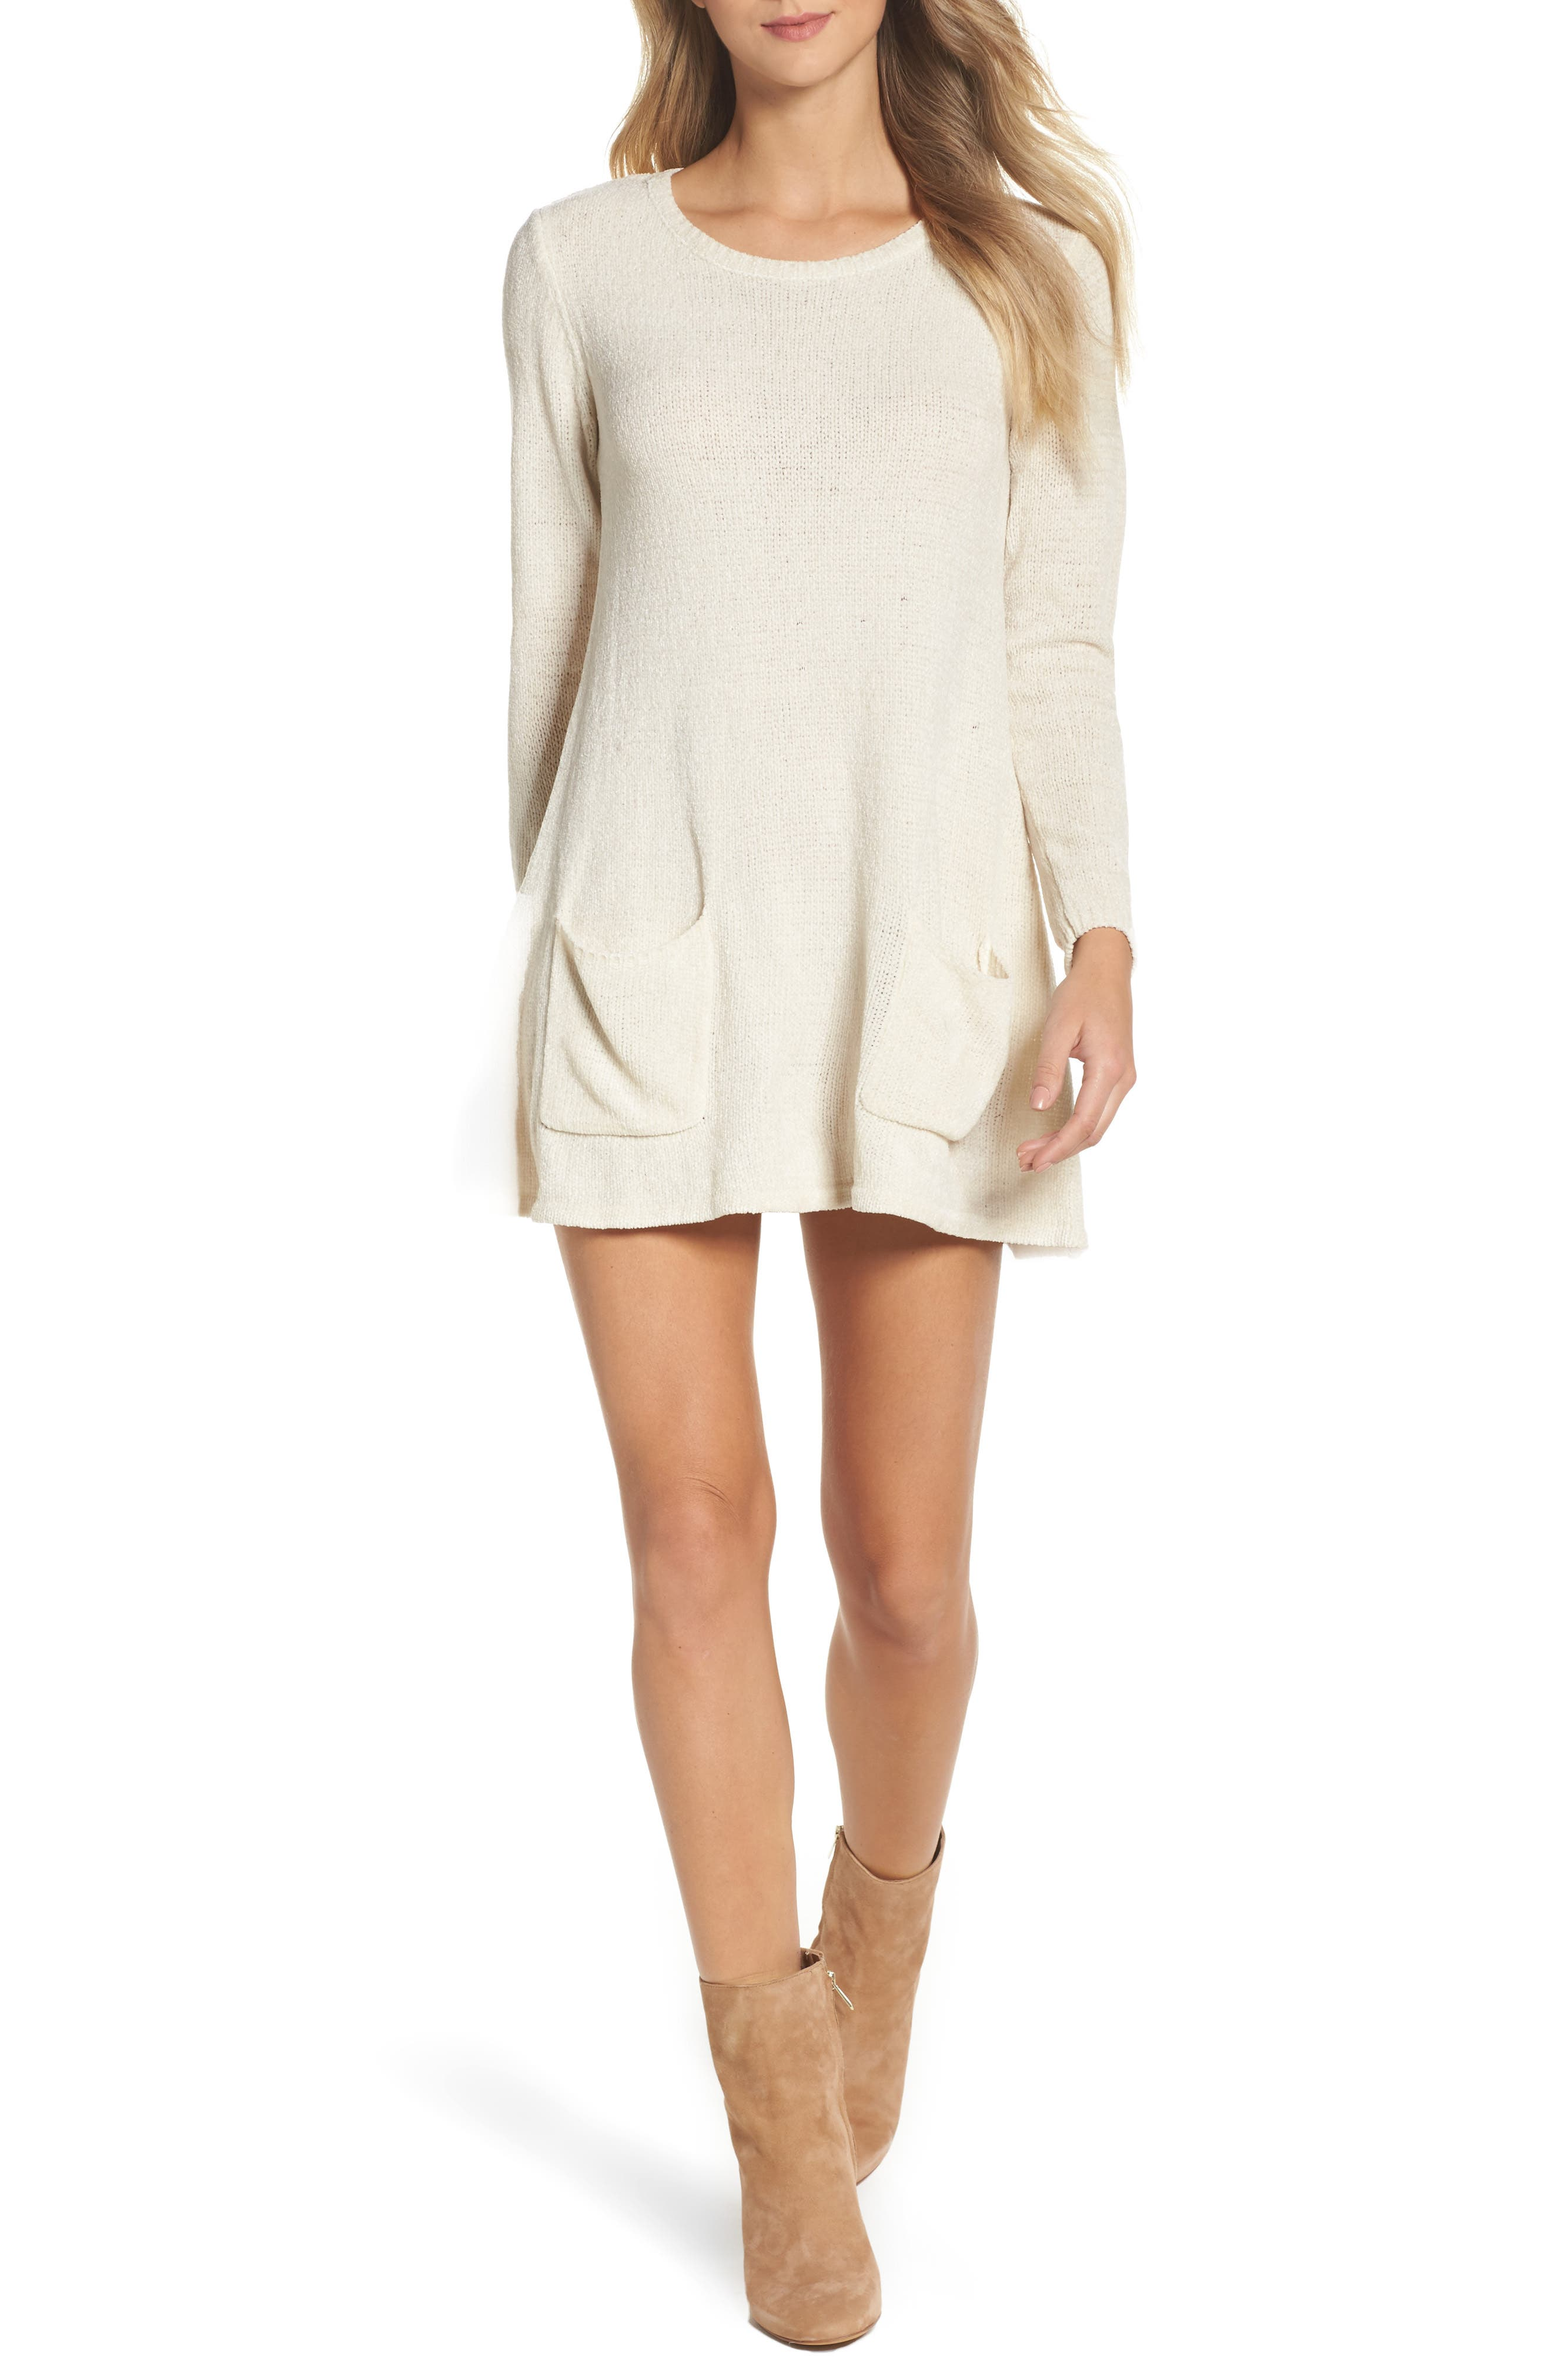 Beverly Sweater Dress,                             Main thumbnail 1, color,                             260